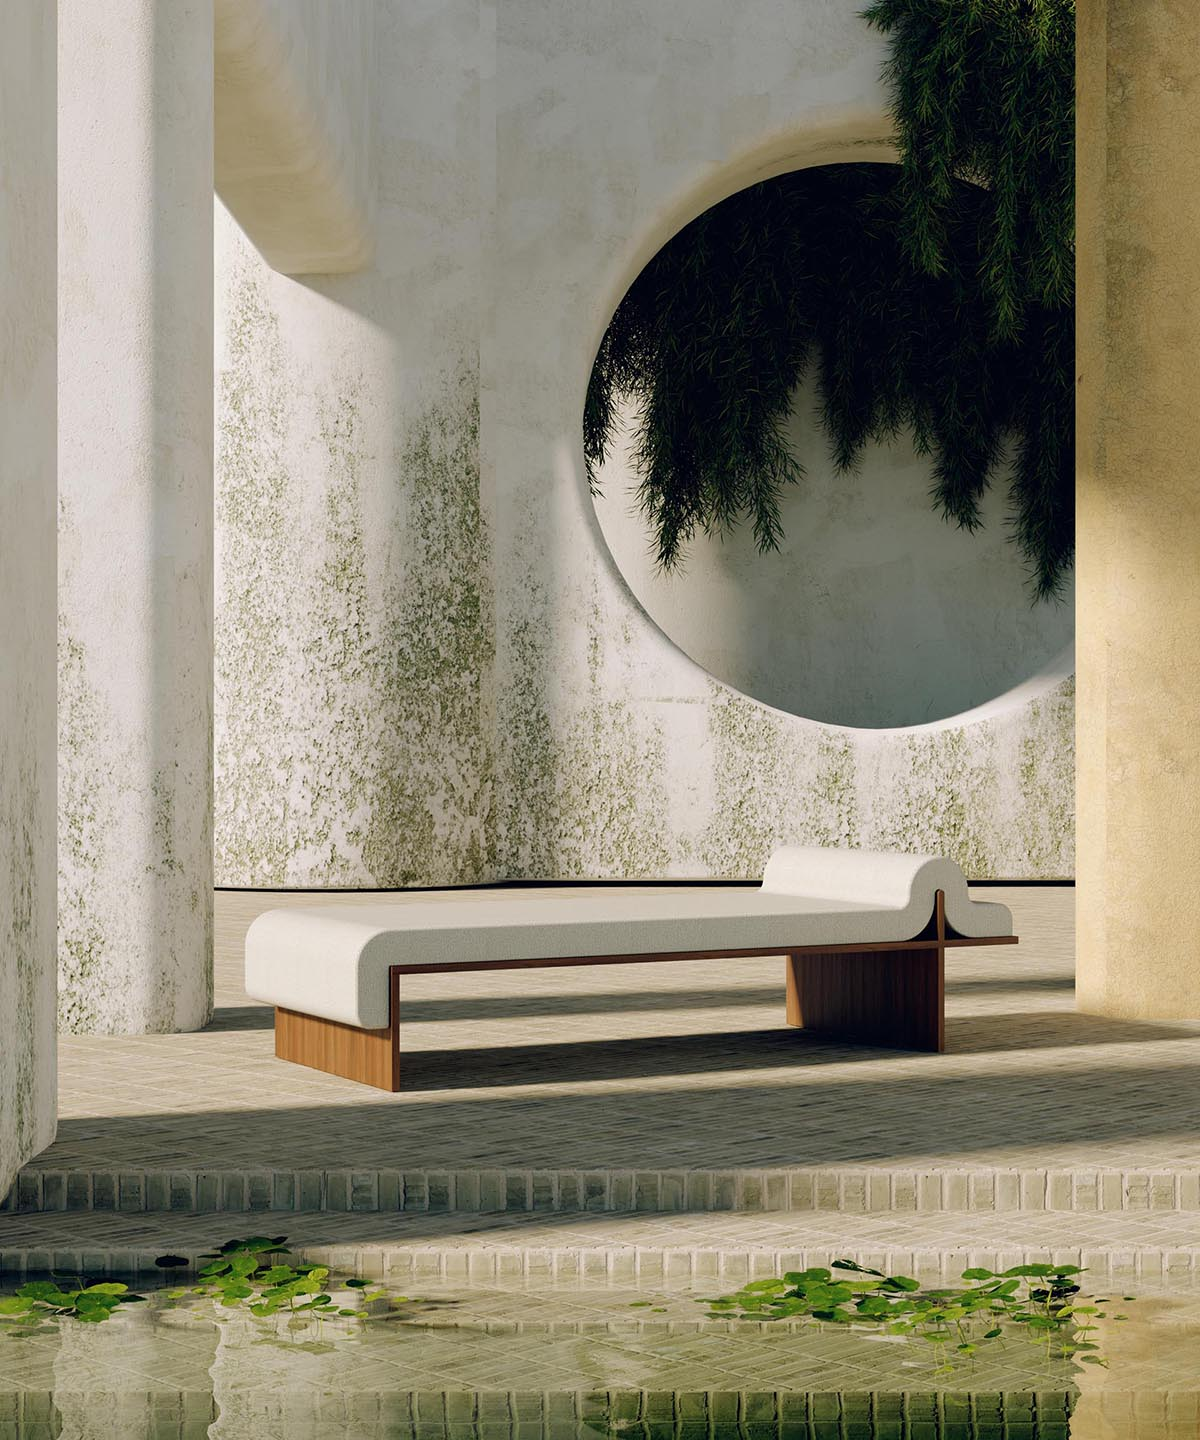 A modern daybed with a white upholstered cushion.